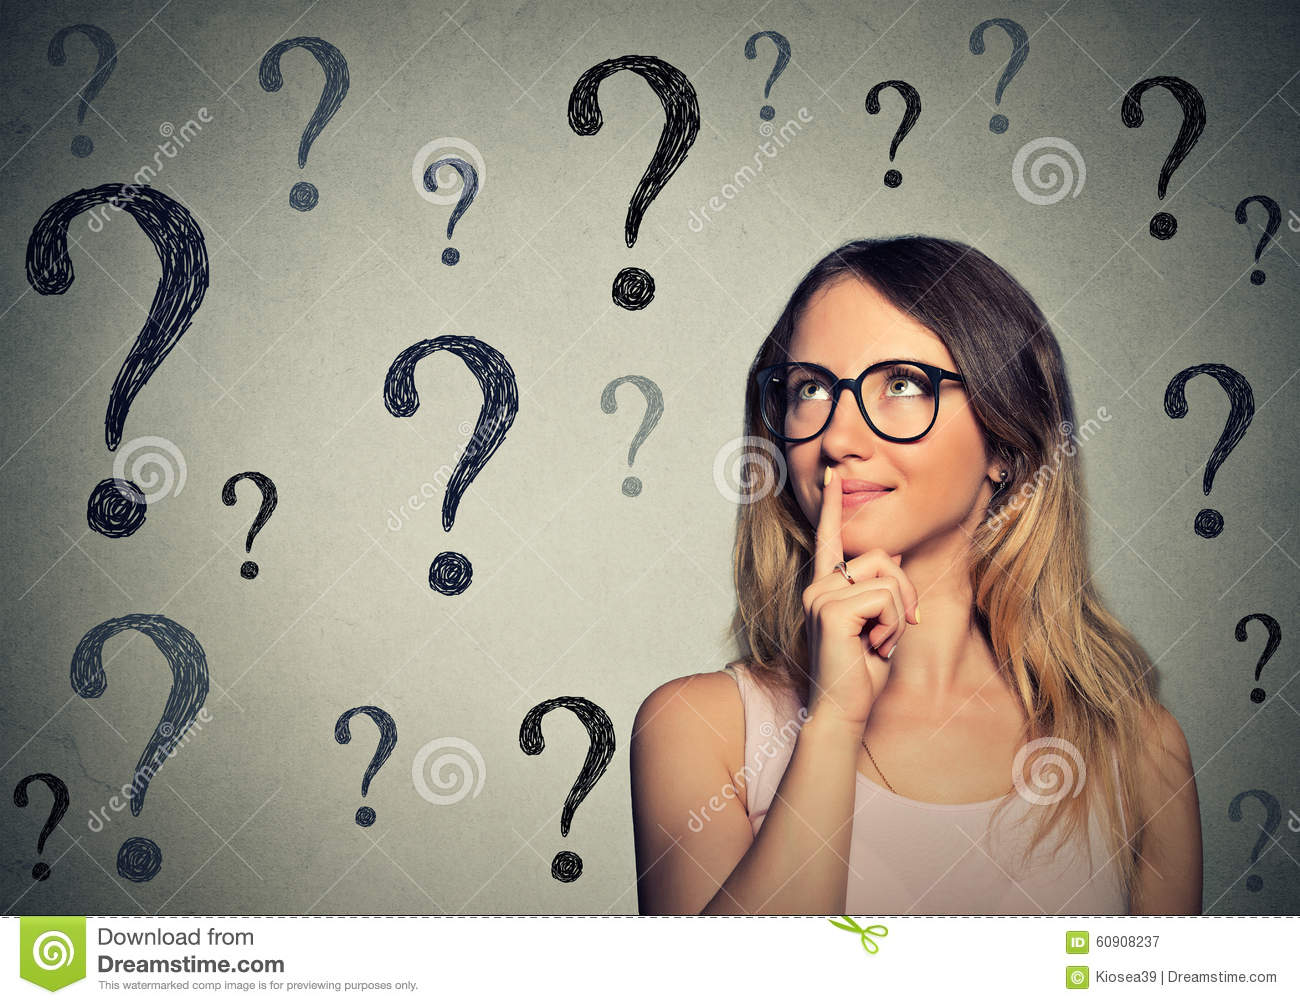 Thinking business woman with glasses looking up at many questions mark